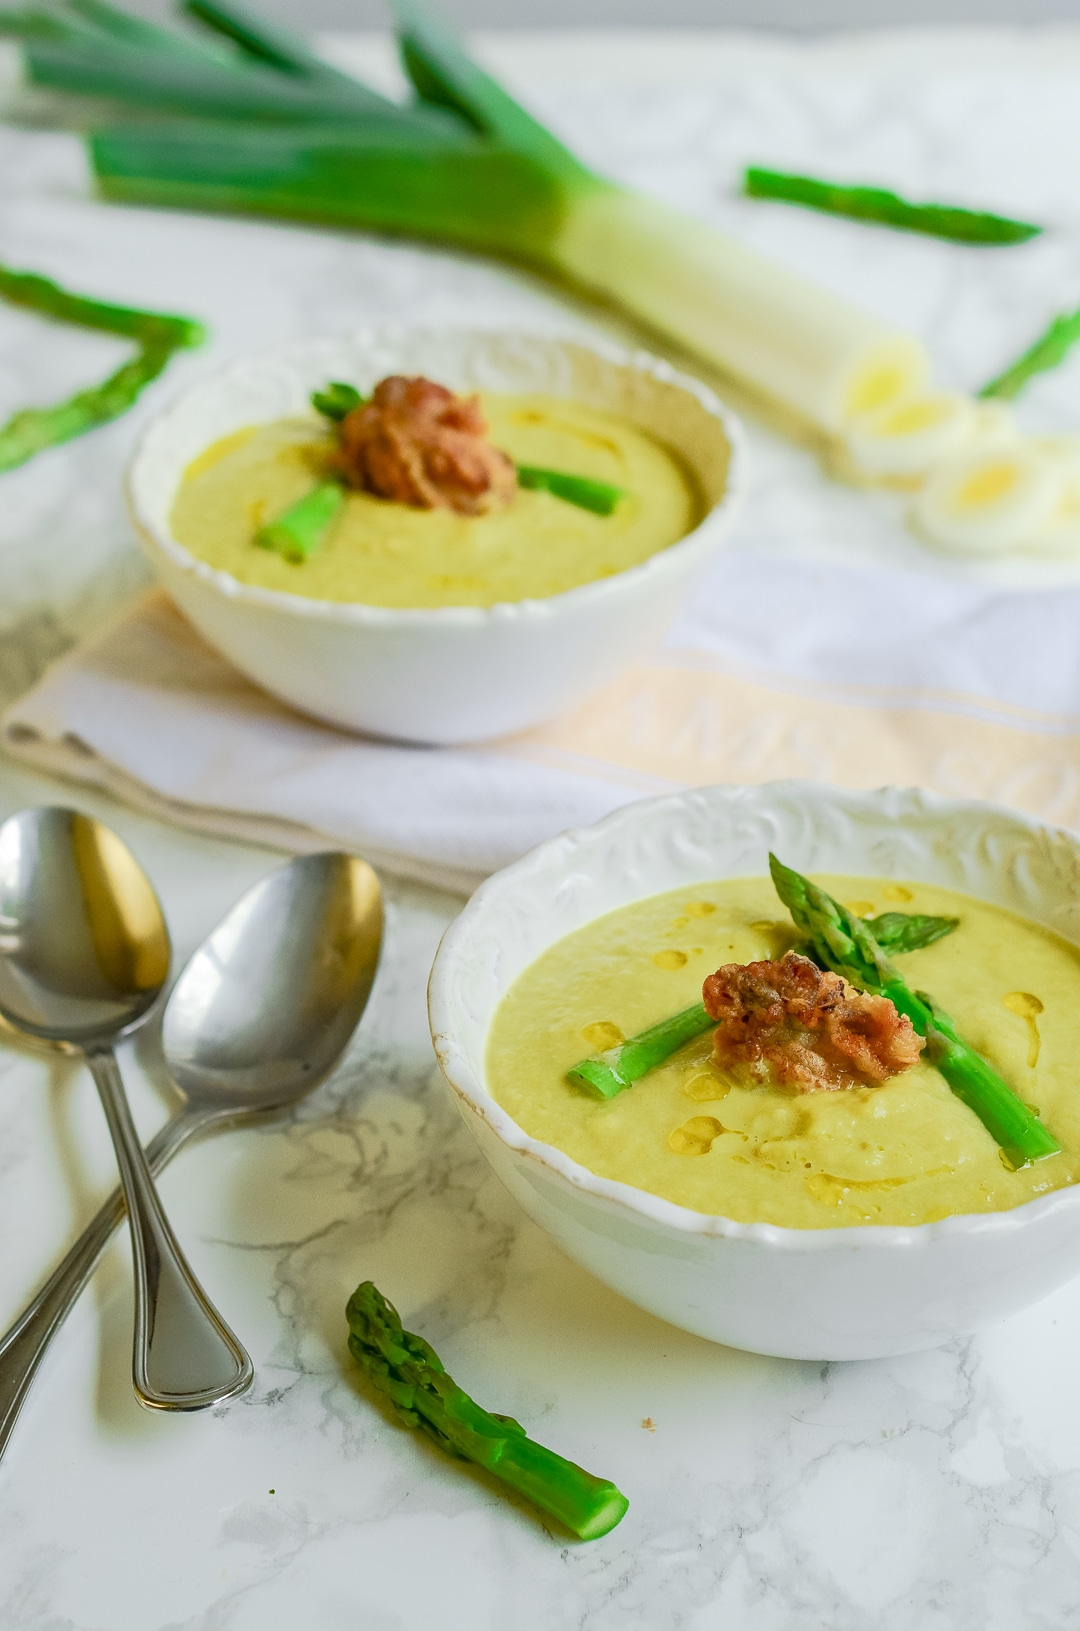 Whether you eat it as an appetizer or an entrée, get in the mood with the aphrodisiacs in this Caramelized Leek & Asparagus Bisque with Fried Oysters.